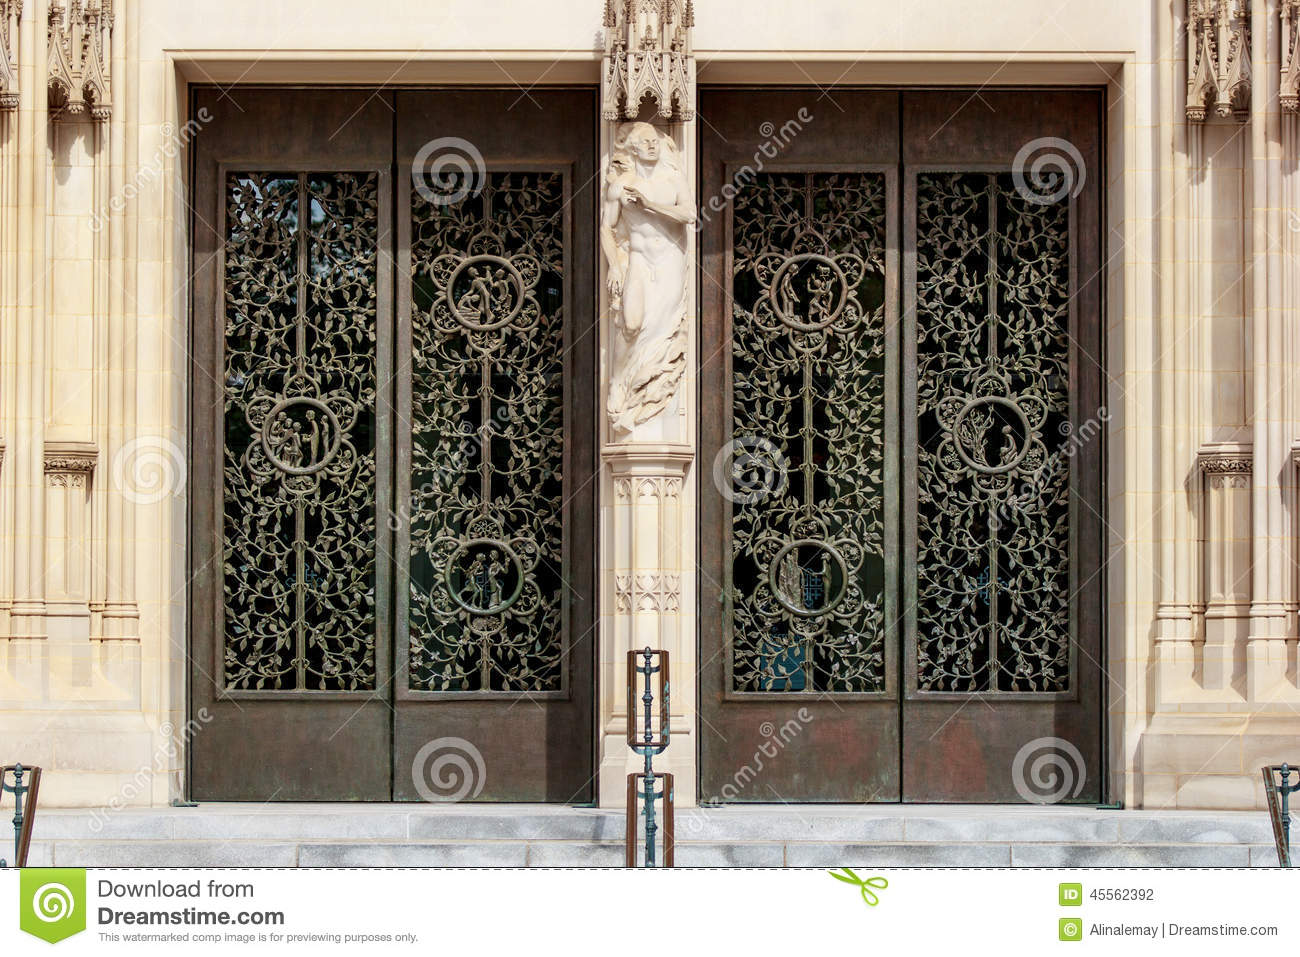 The doors of the Main Tower at the Washington National Cathedral & The Doors Of The Main Tower At The Washington National Cathedral ...